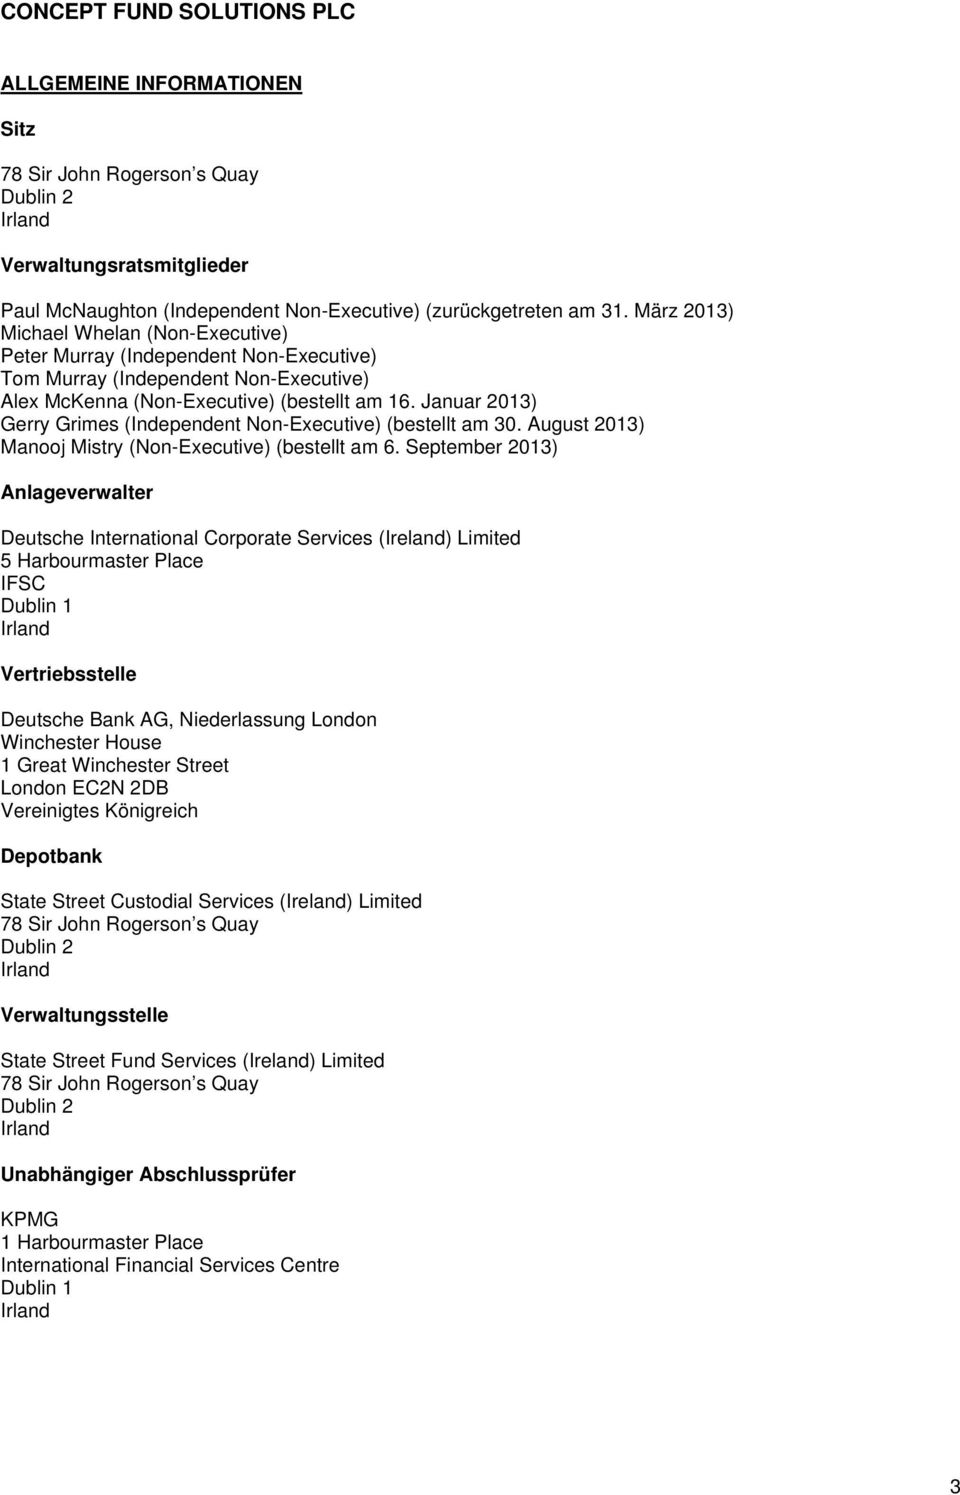 Januar 2013) Gerry Grimes (Independent Non-Executive) (bestellt am 30. August 2013) Manooj Mistry (Non-Executive) (bestellt am 6.